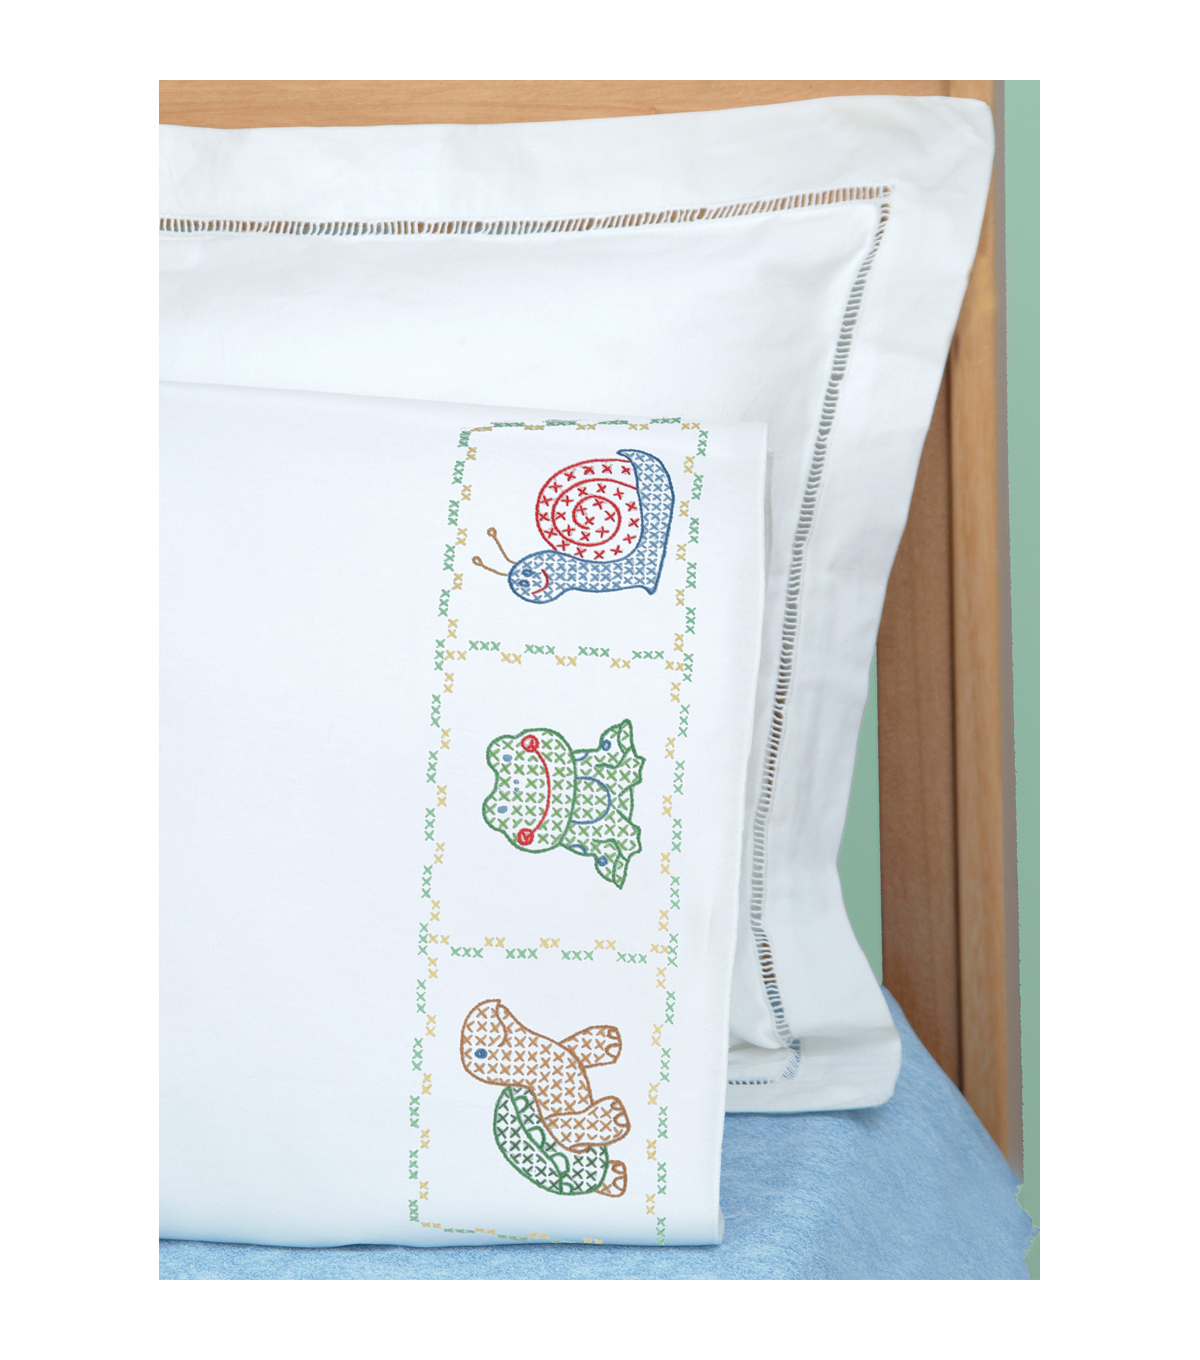 Jack Dempsey Children\u0027s Stamped Pillowcase With Perle Edge Froggy